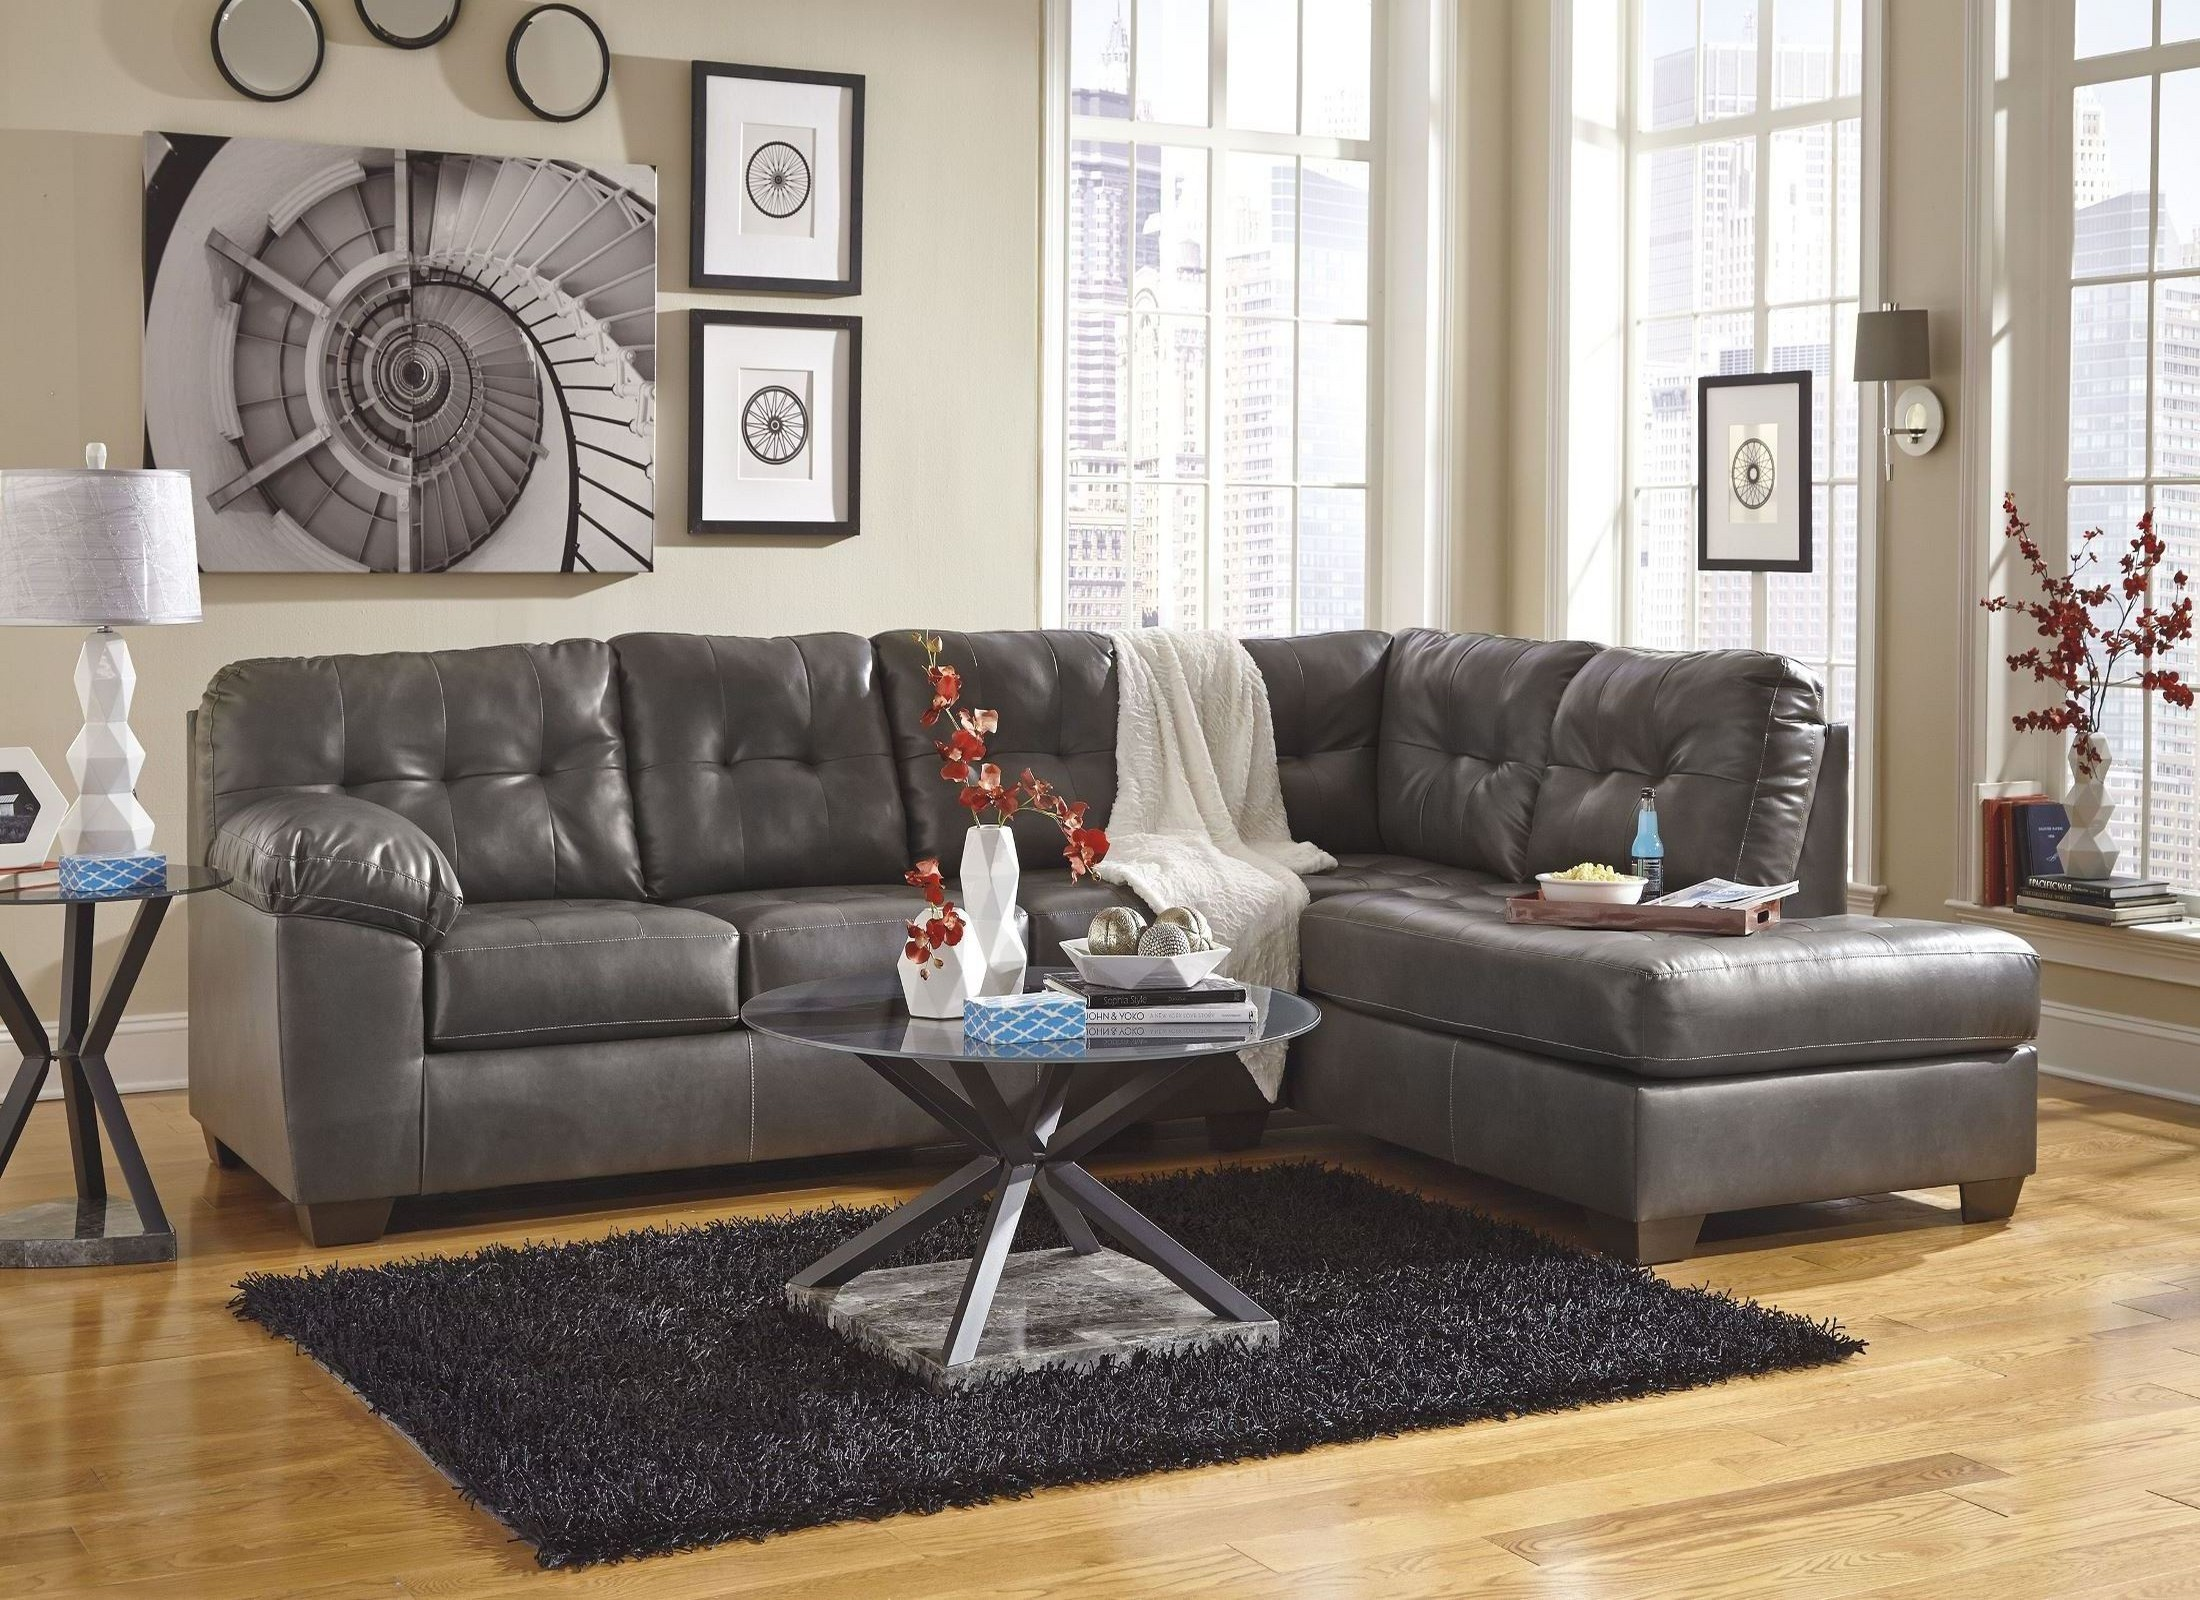 Alliston DuraBlend Gray RAF Sectional from Ashley 17 66